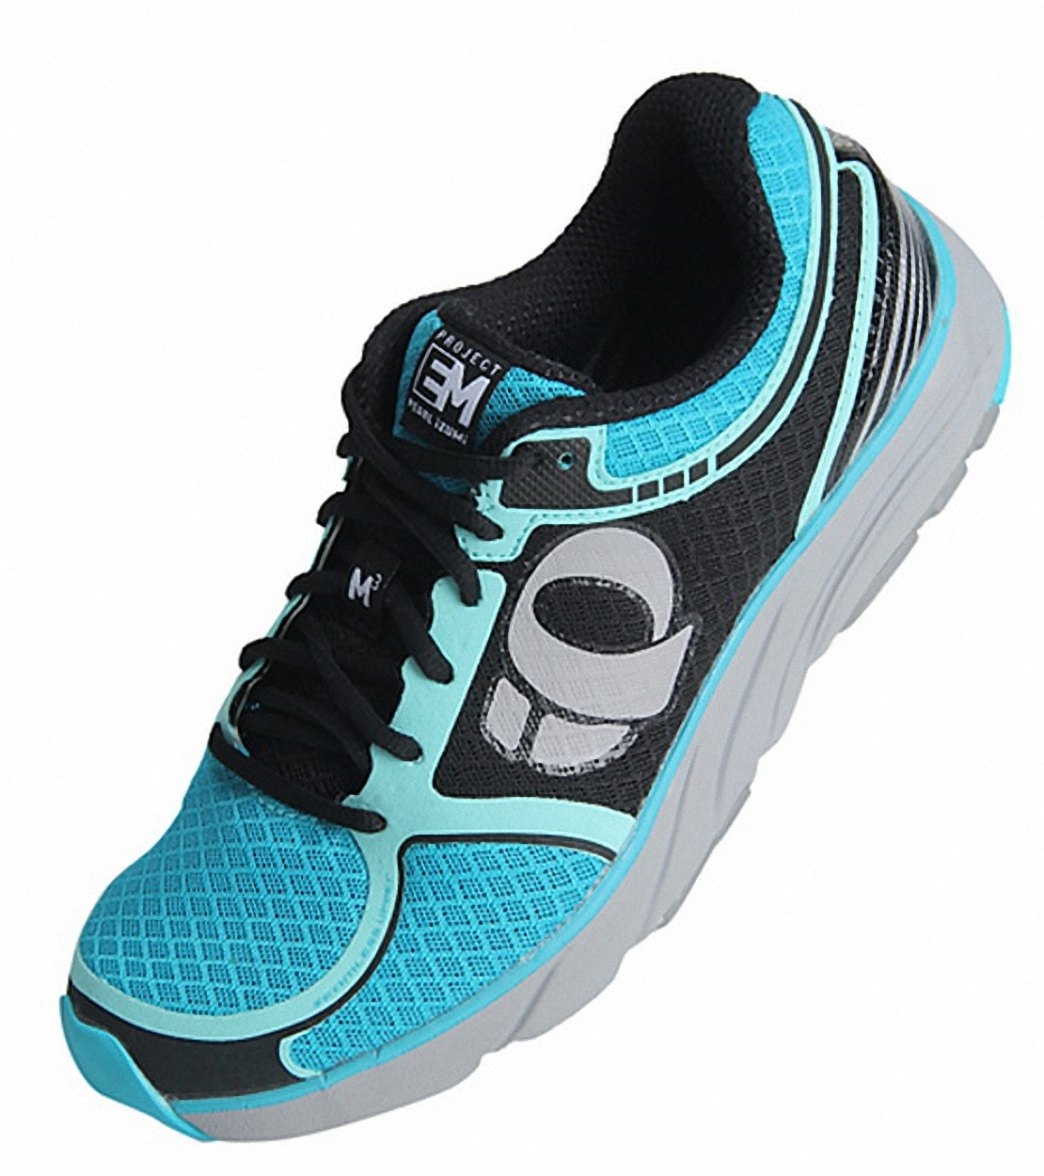 Pearl Izumi Women s EM Road M3 Running Shoes at SwimOutlet.com - Free  Shipping 572add63a